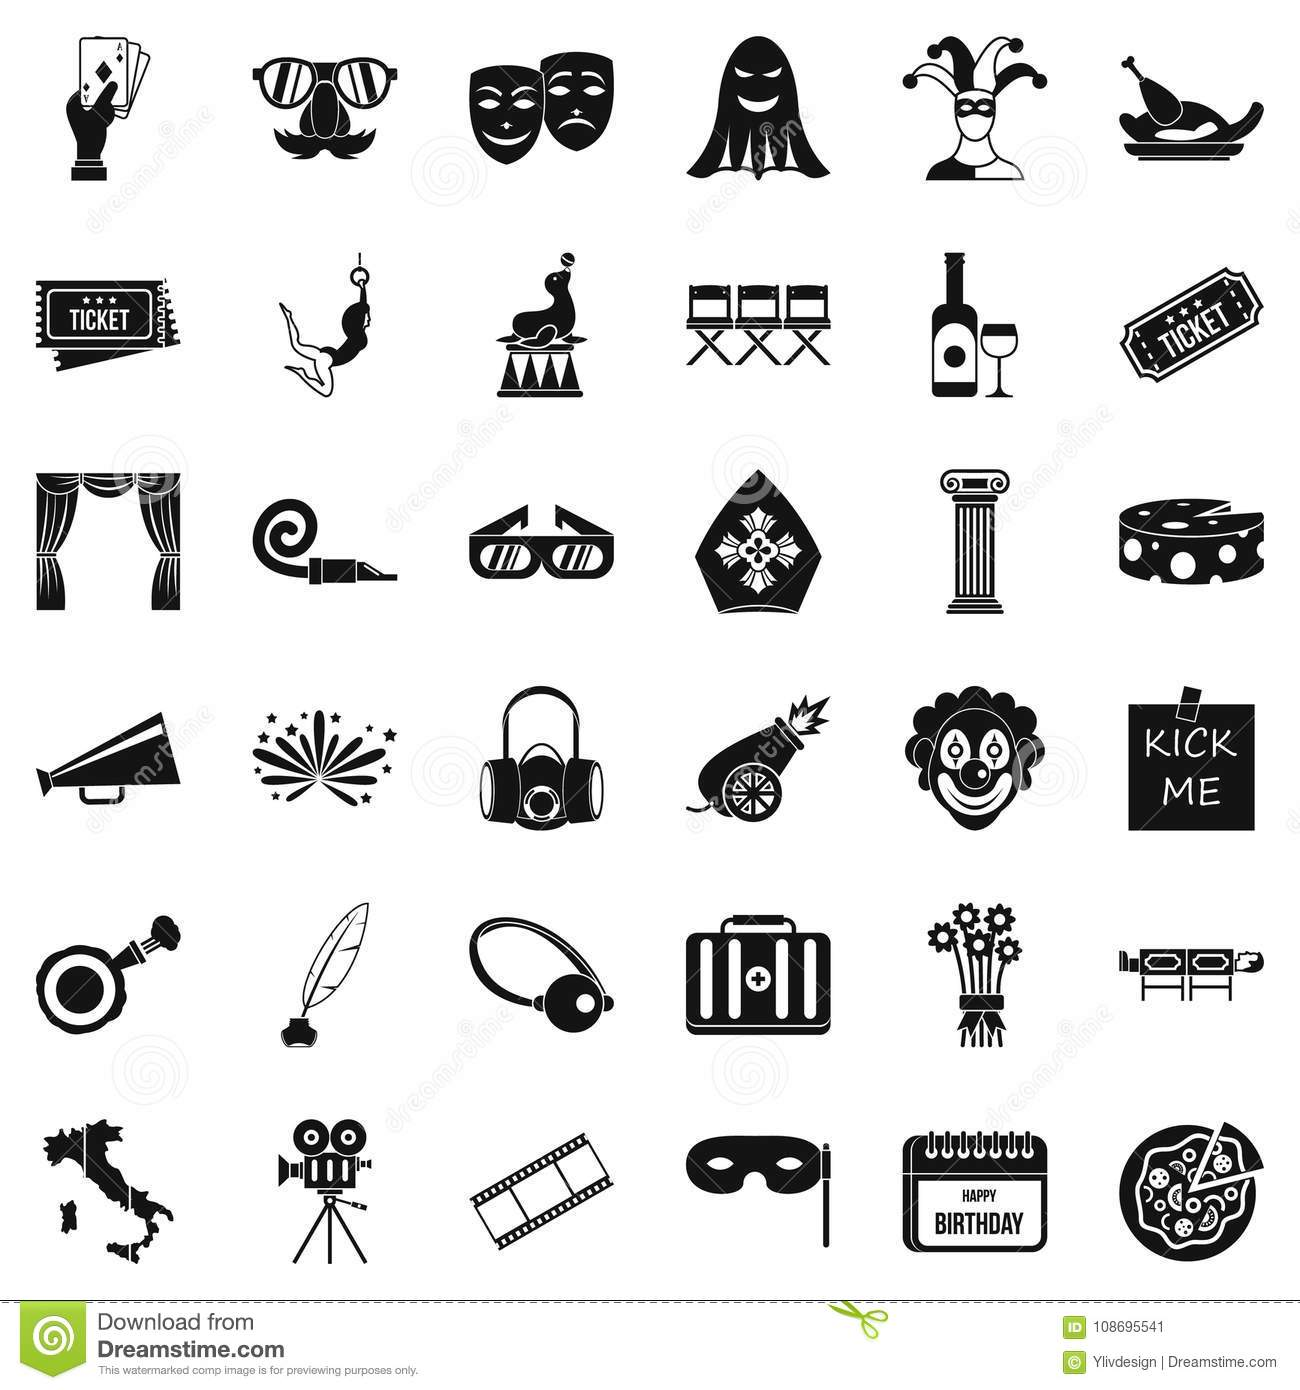 staging icons set simple style stock vector illustration of